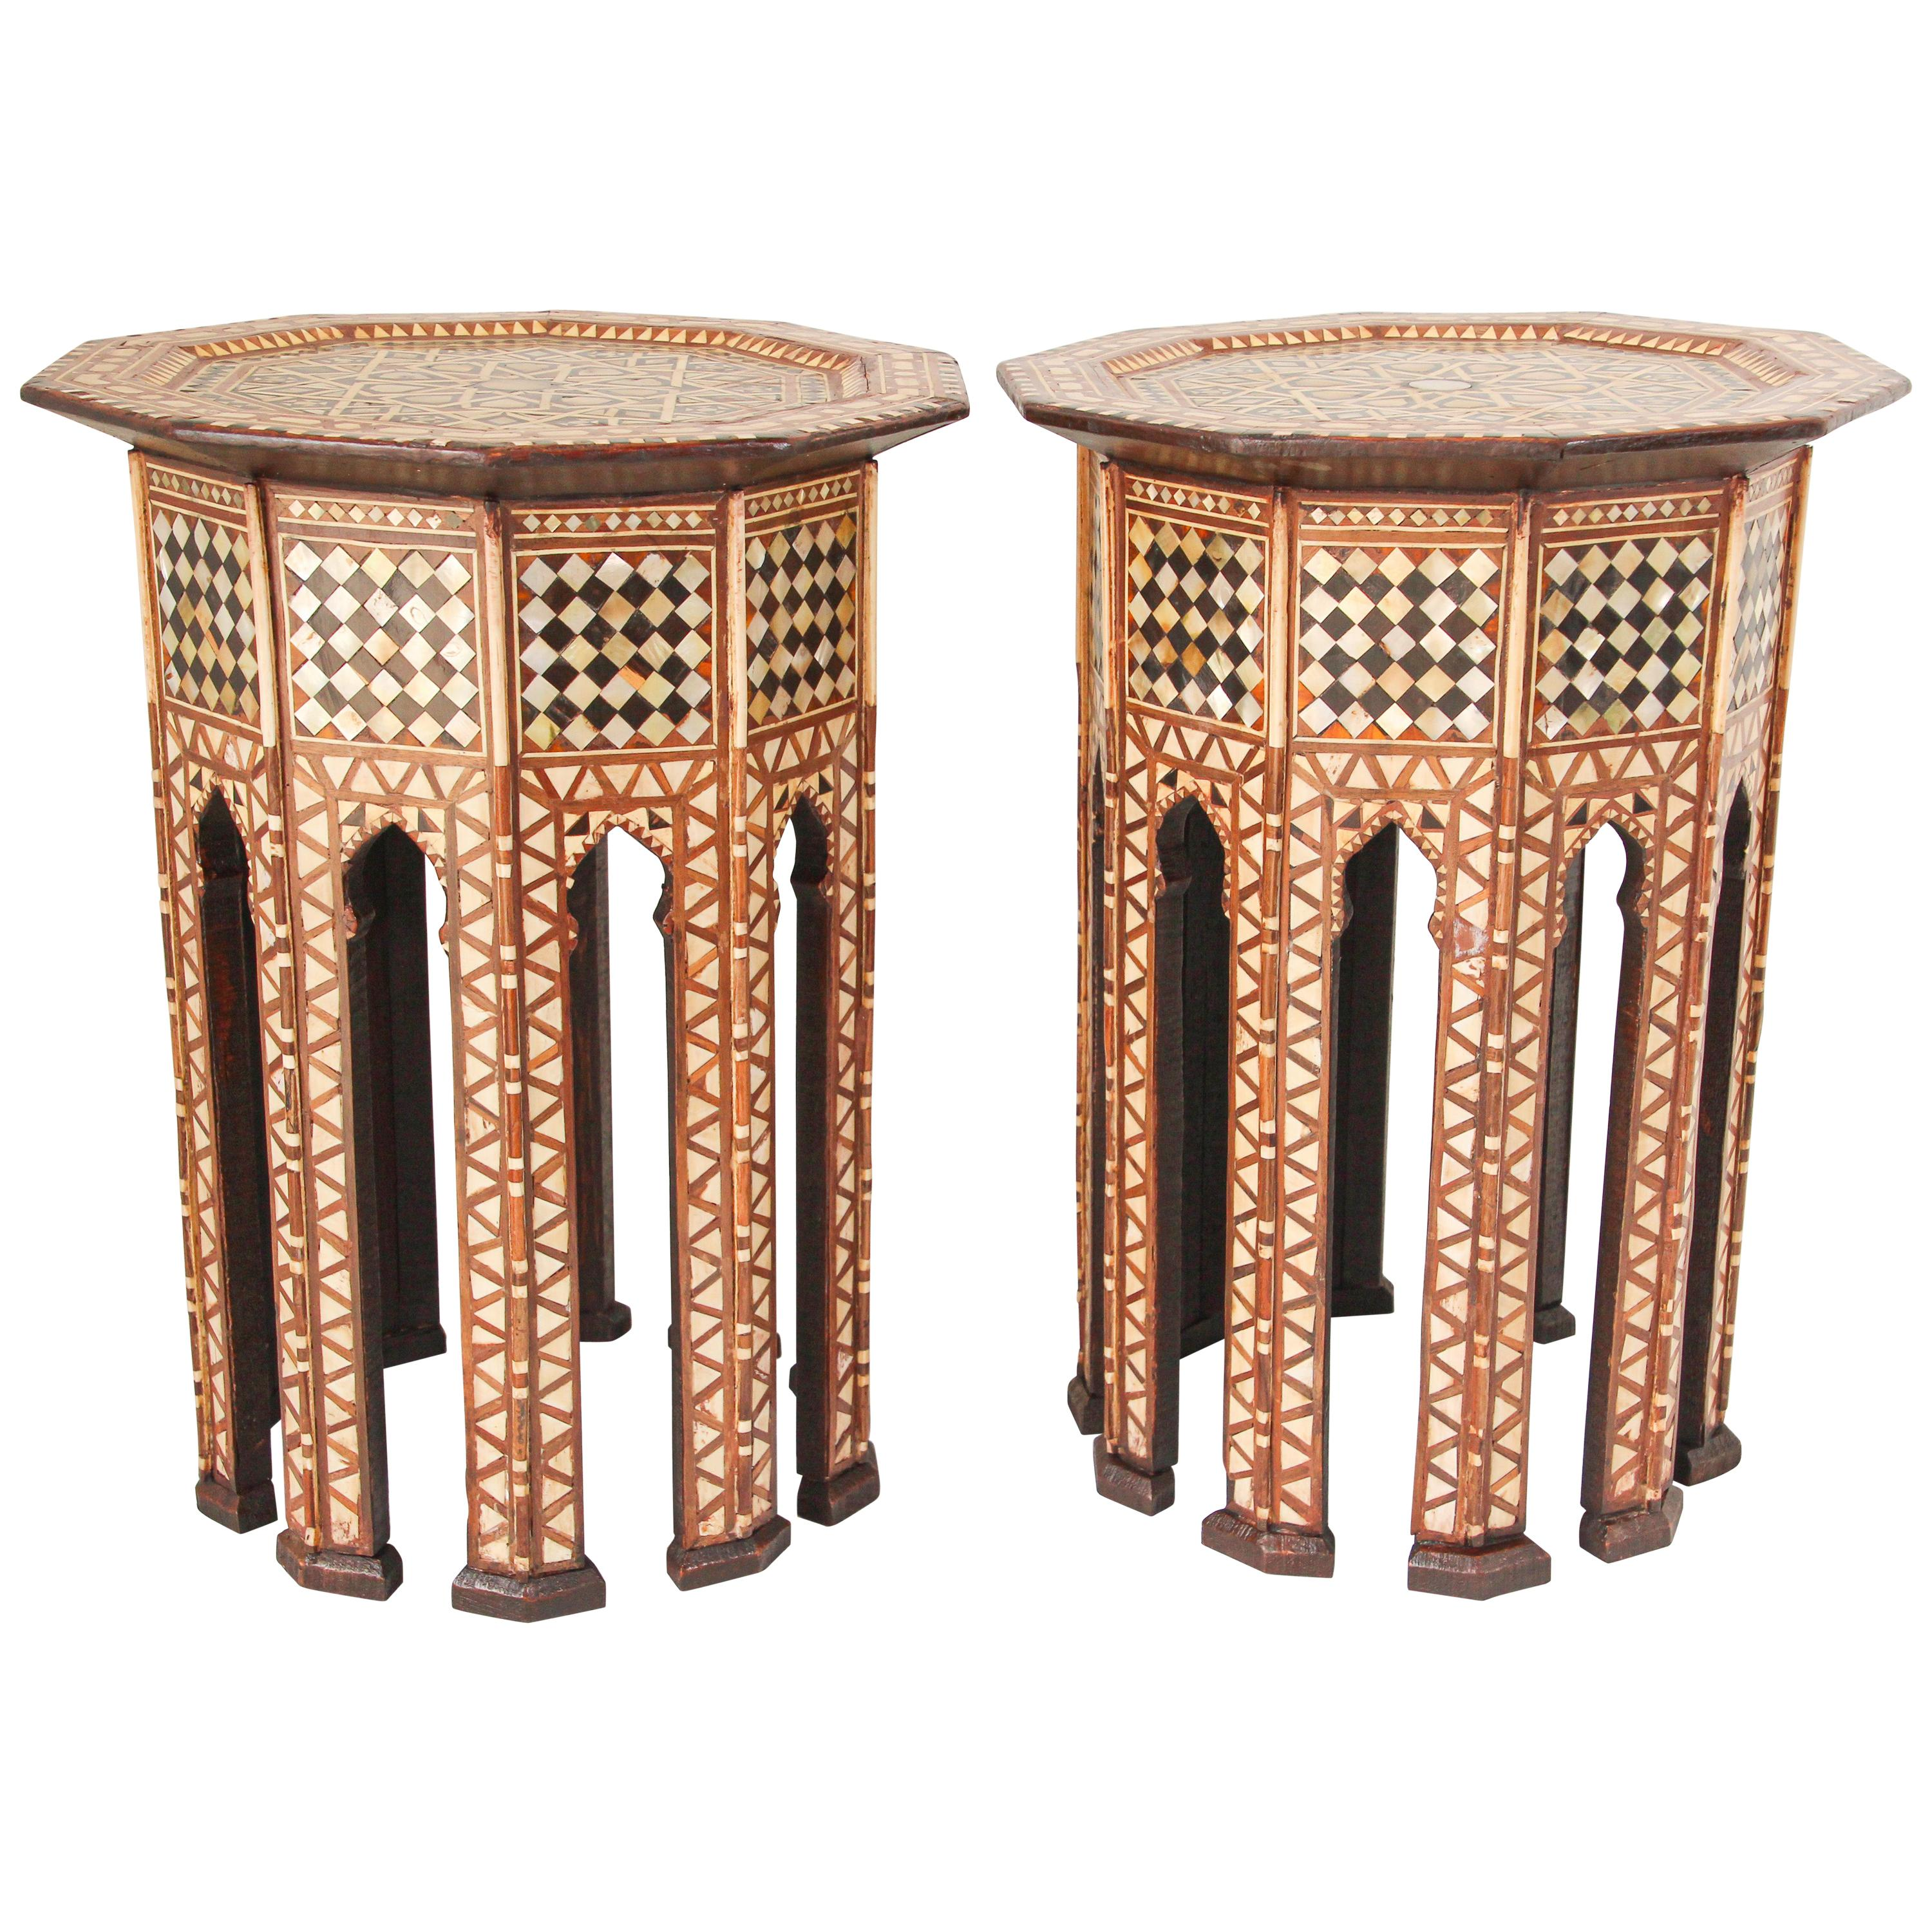 Middle East Syrian Octagonal Tables Inlaid with Mother of Pearl